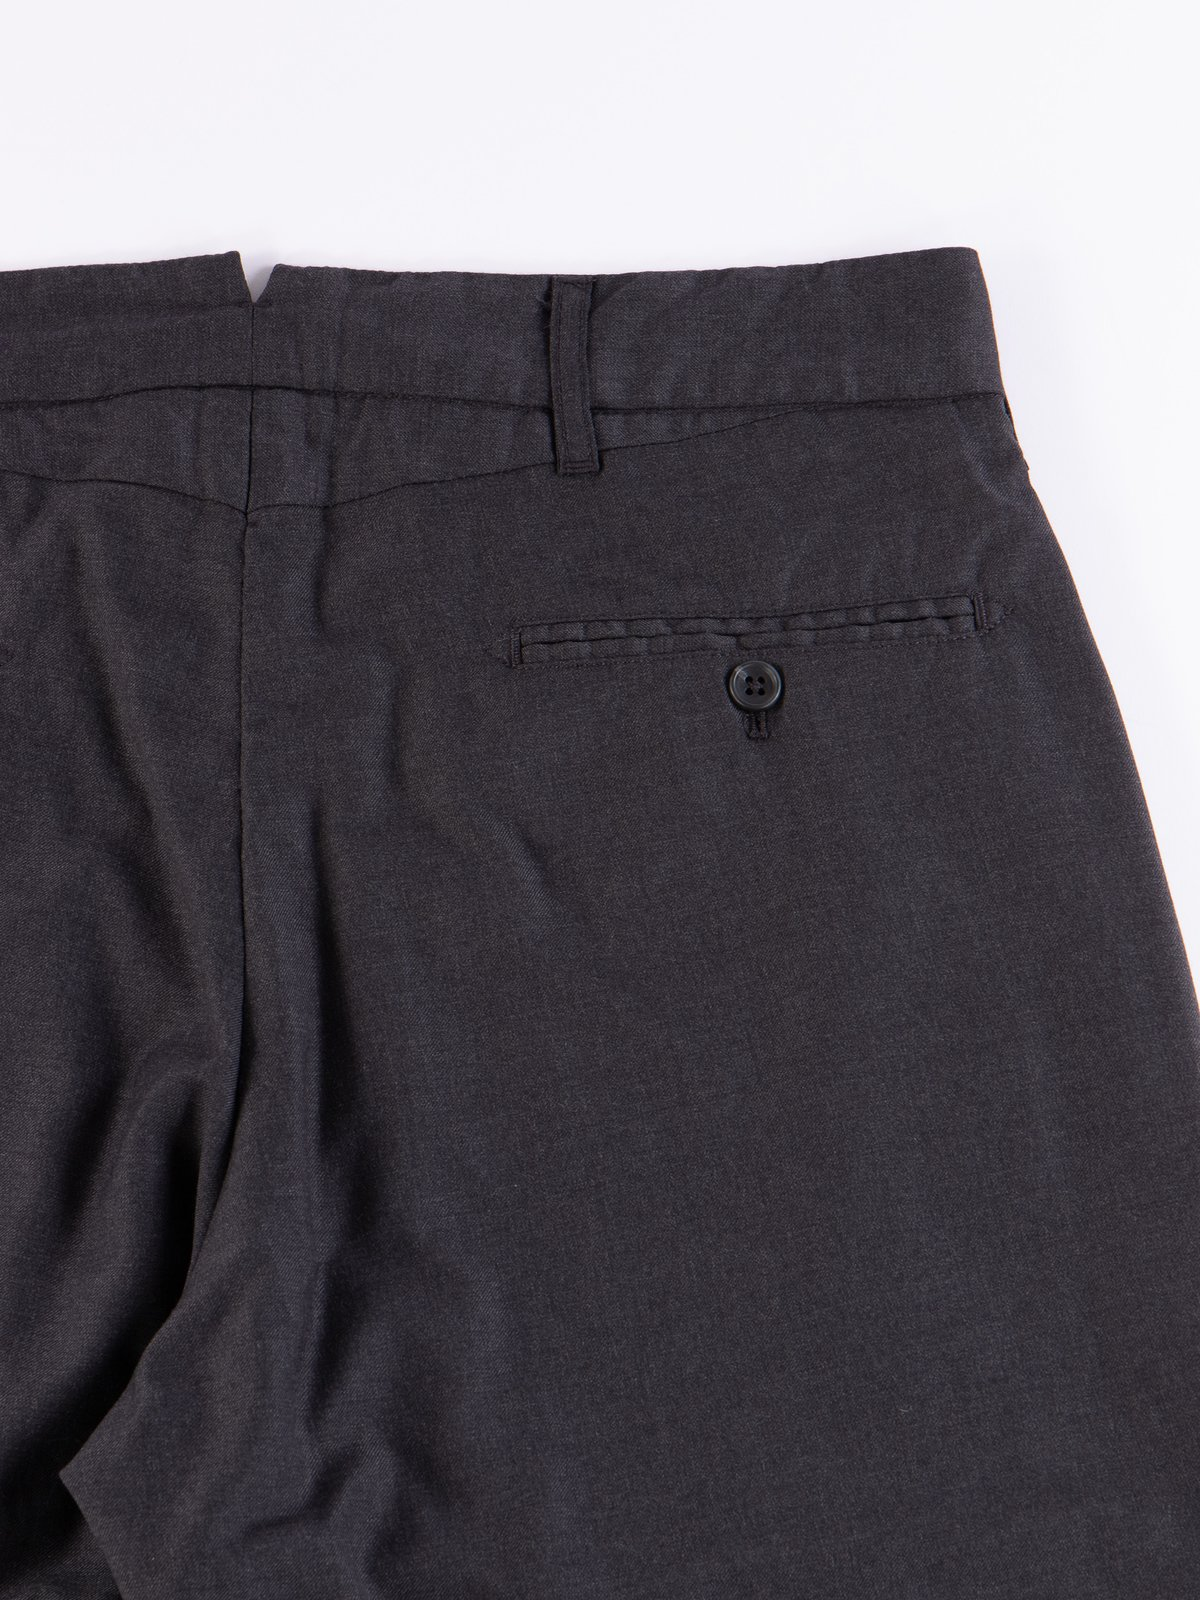 Charcoal Worsted Wool Gabardine Andover Pant - Image 6